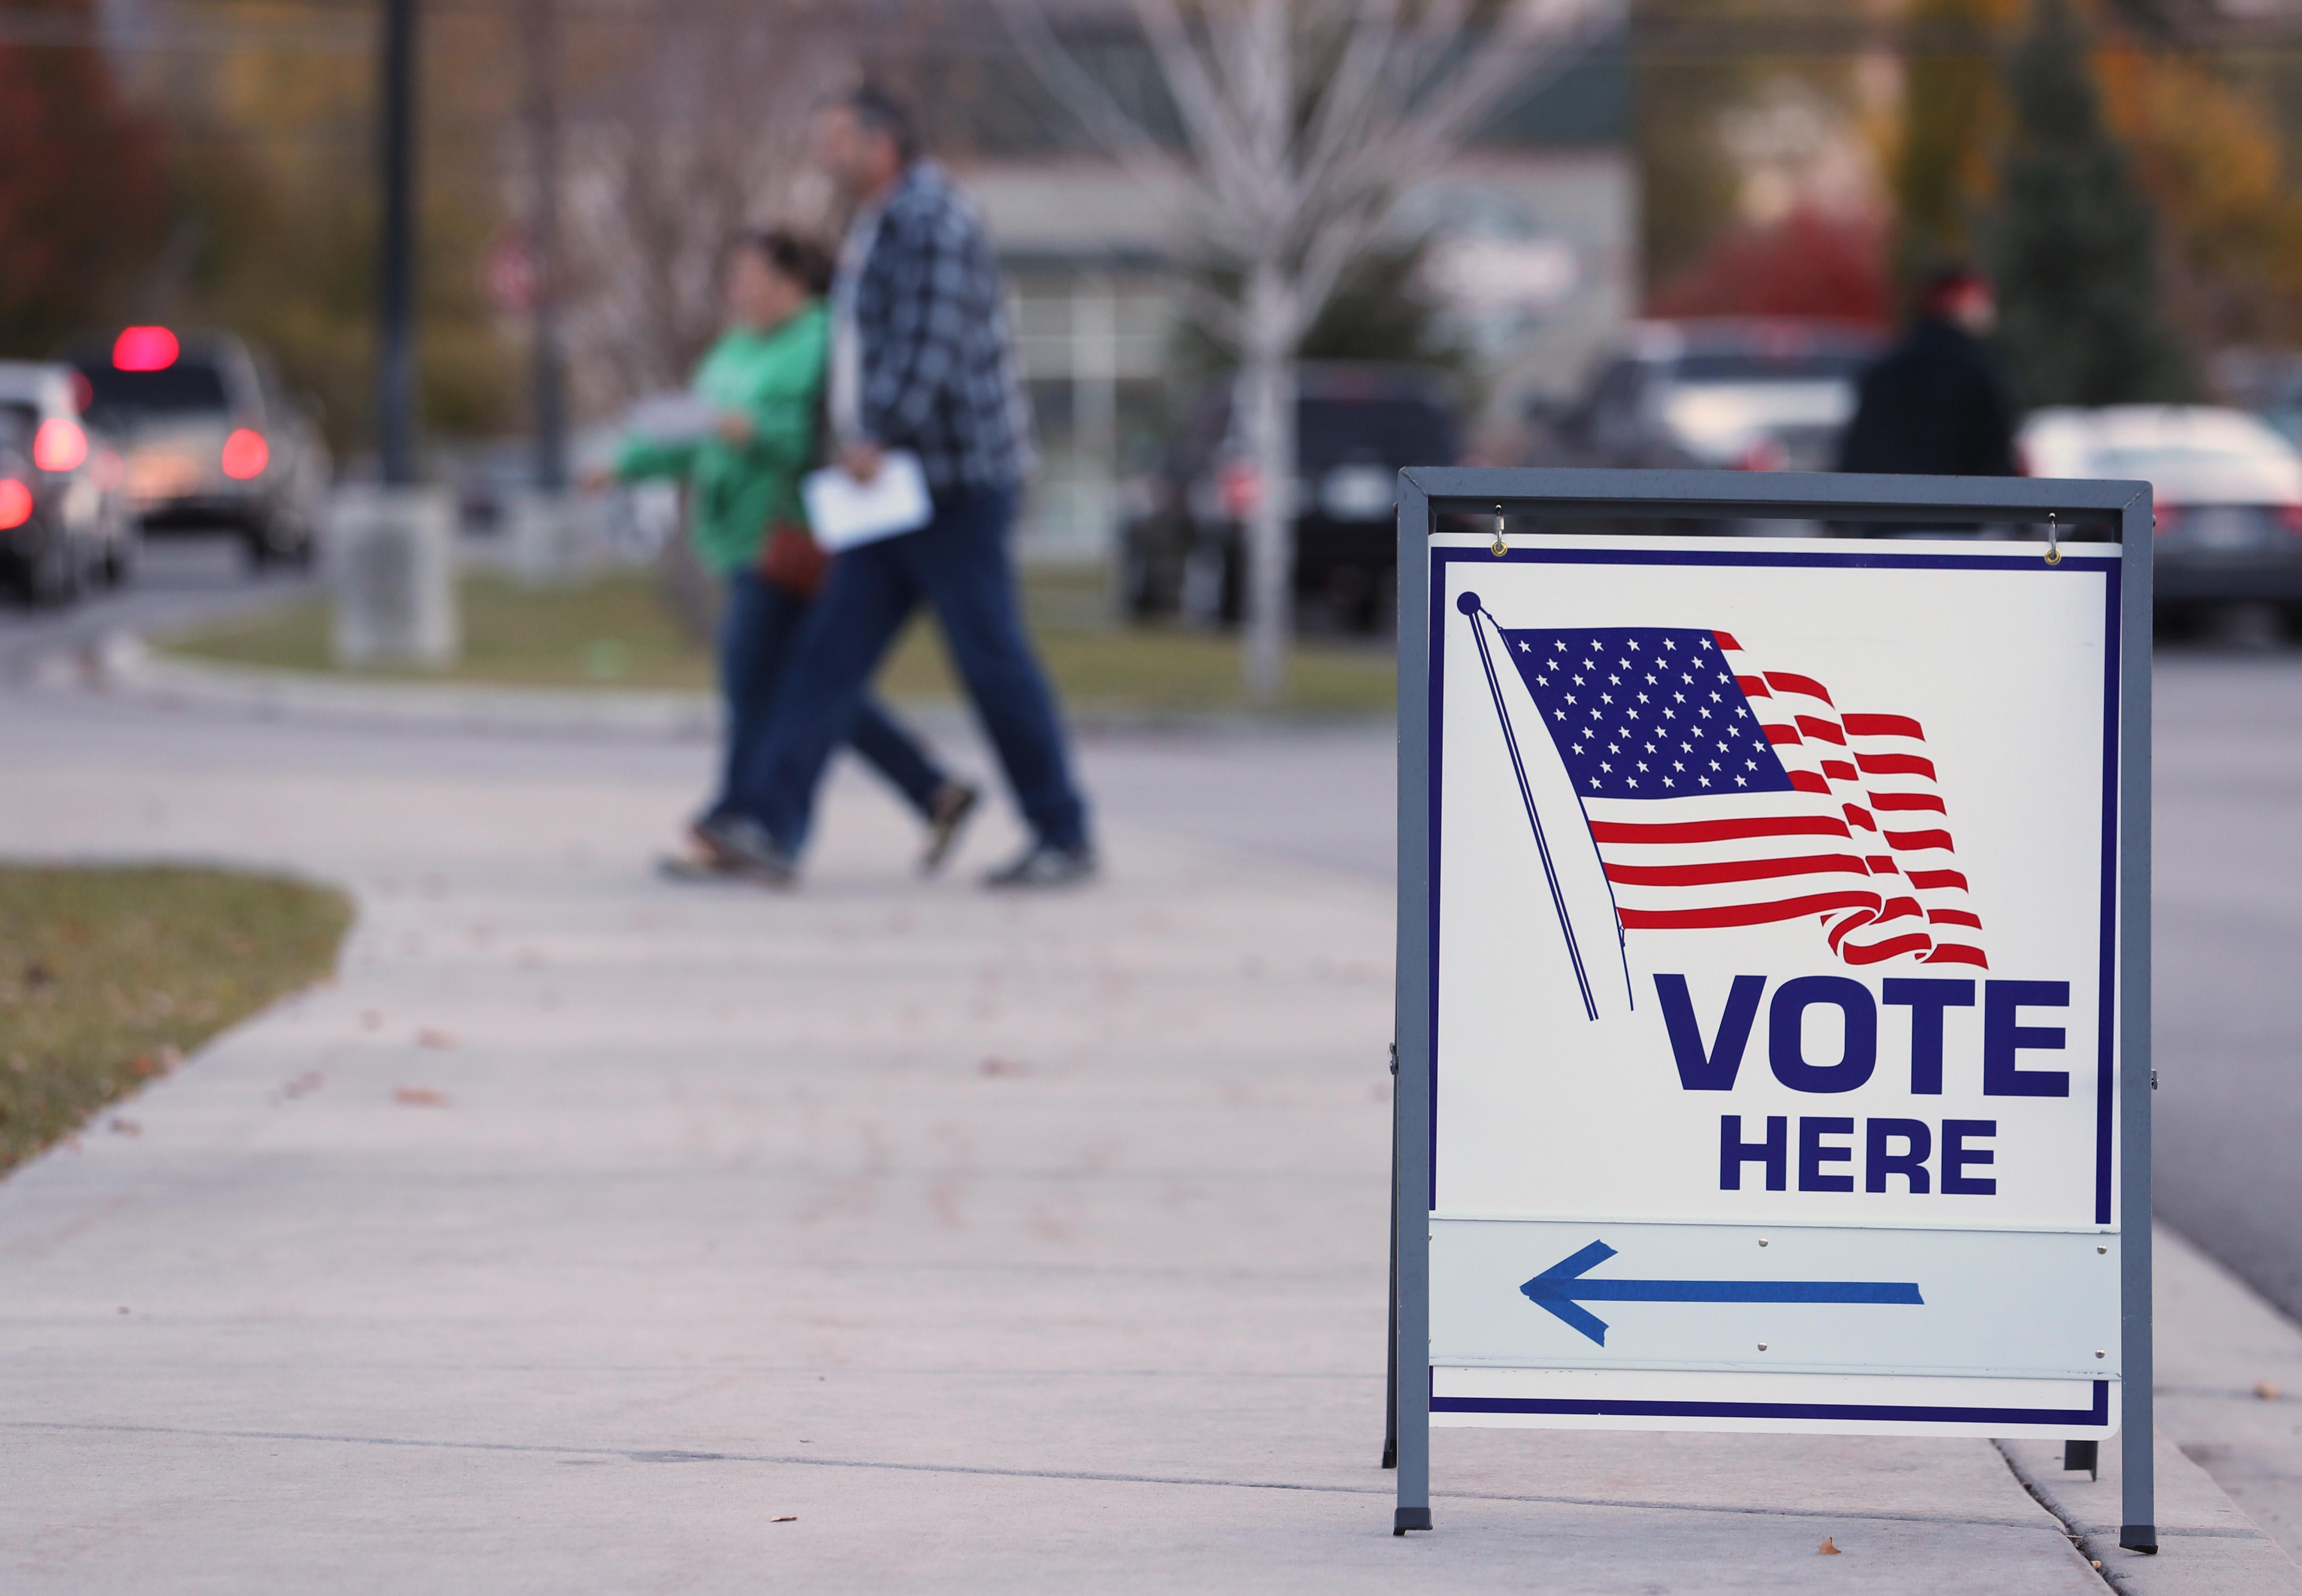 PROVO, UT - NOVEMBER 6: A couple walks into a polling center to vote in the midterm elections on November 6, 2018 in Provo, Utah. Utah early voting has been highest ever in Utah's midterm elections. One of the main proportions on the ballet in Utah is whether Utah will legalize medical marijuana.  (Photo by George Frey/Getty Images)